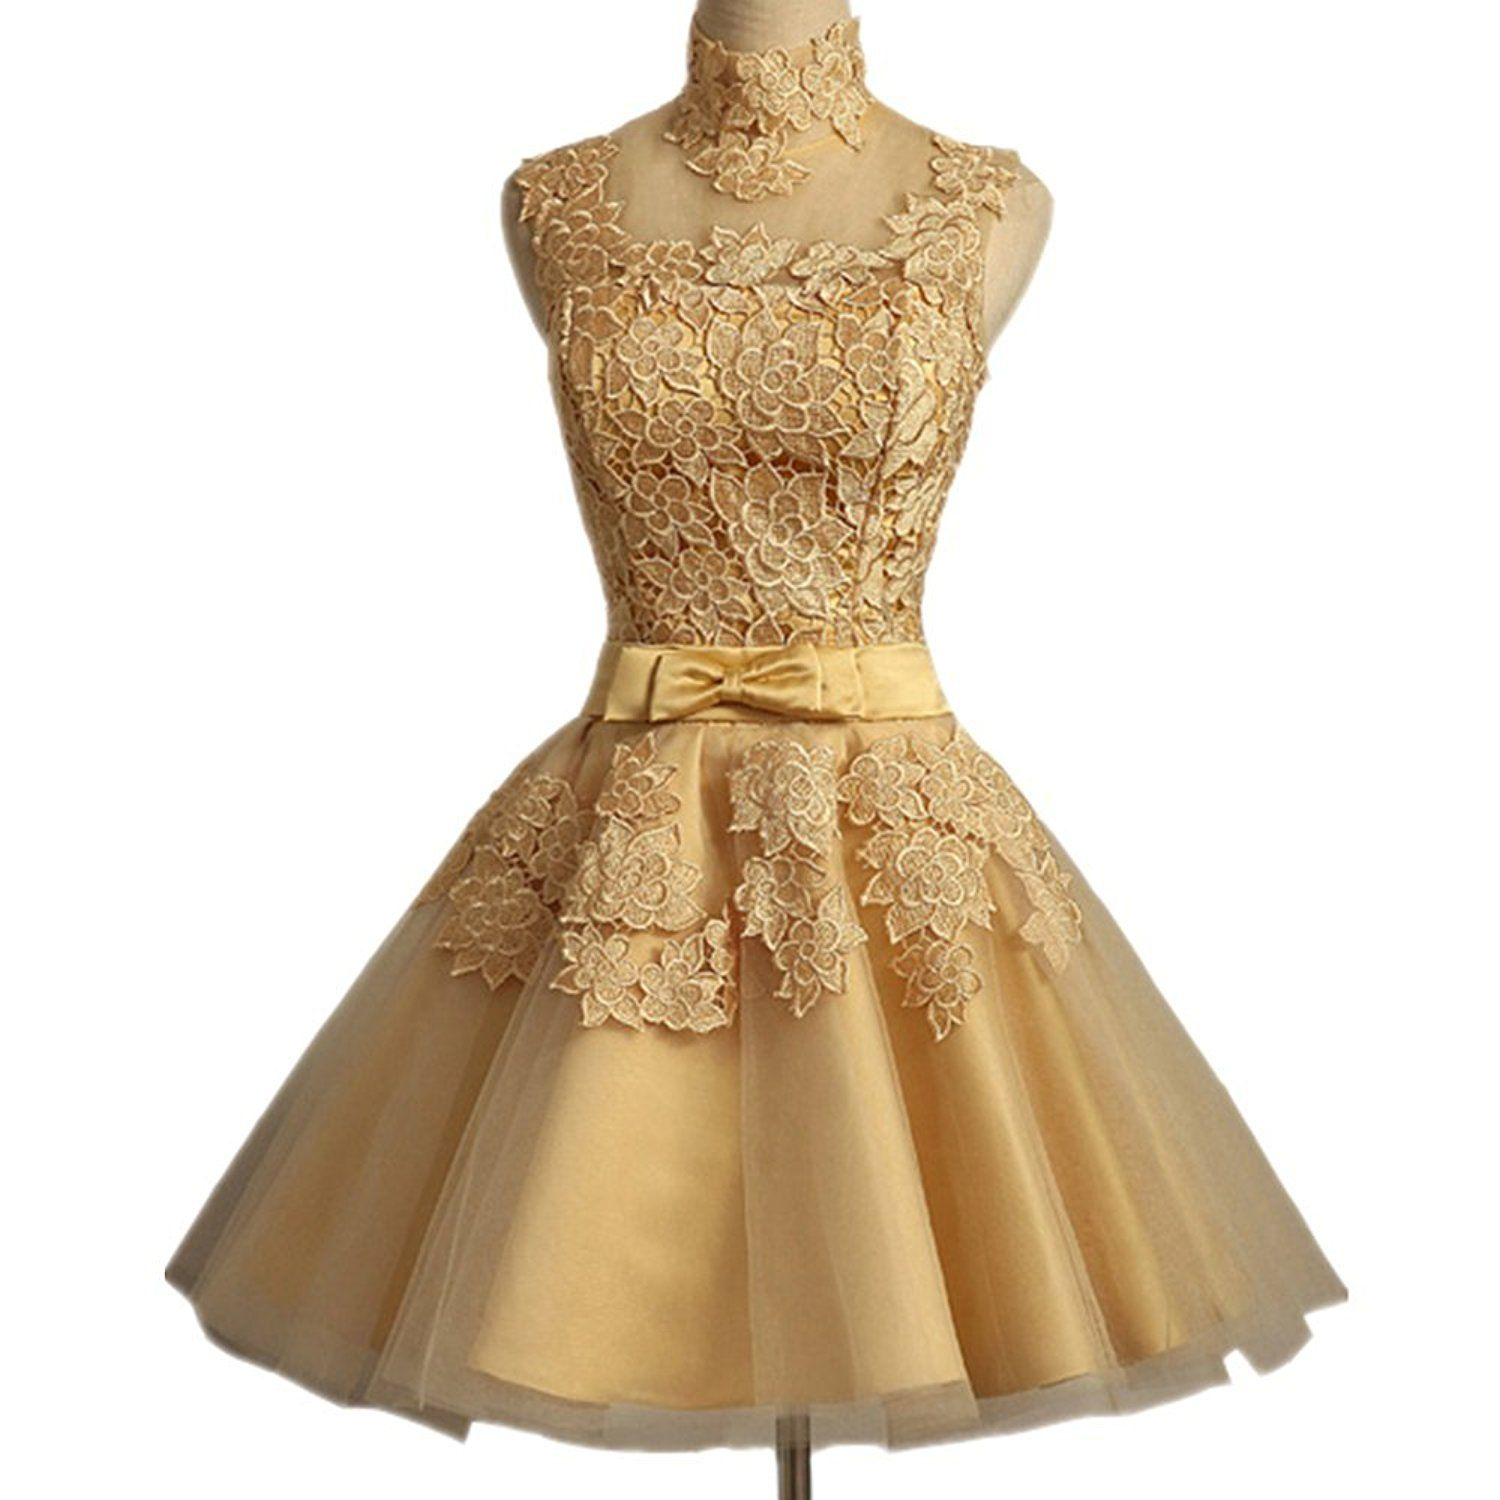 Lace appliqued empire ball gown bridesmaid dress short prom party